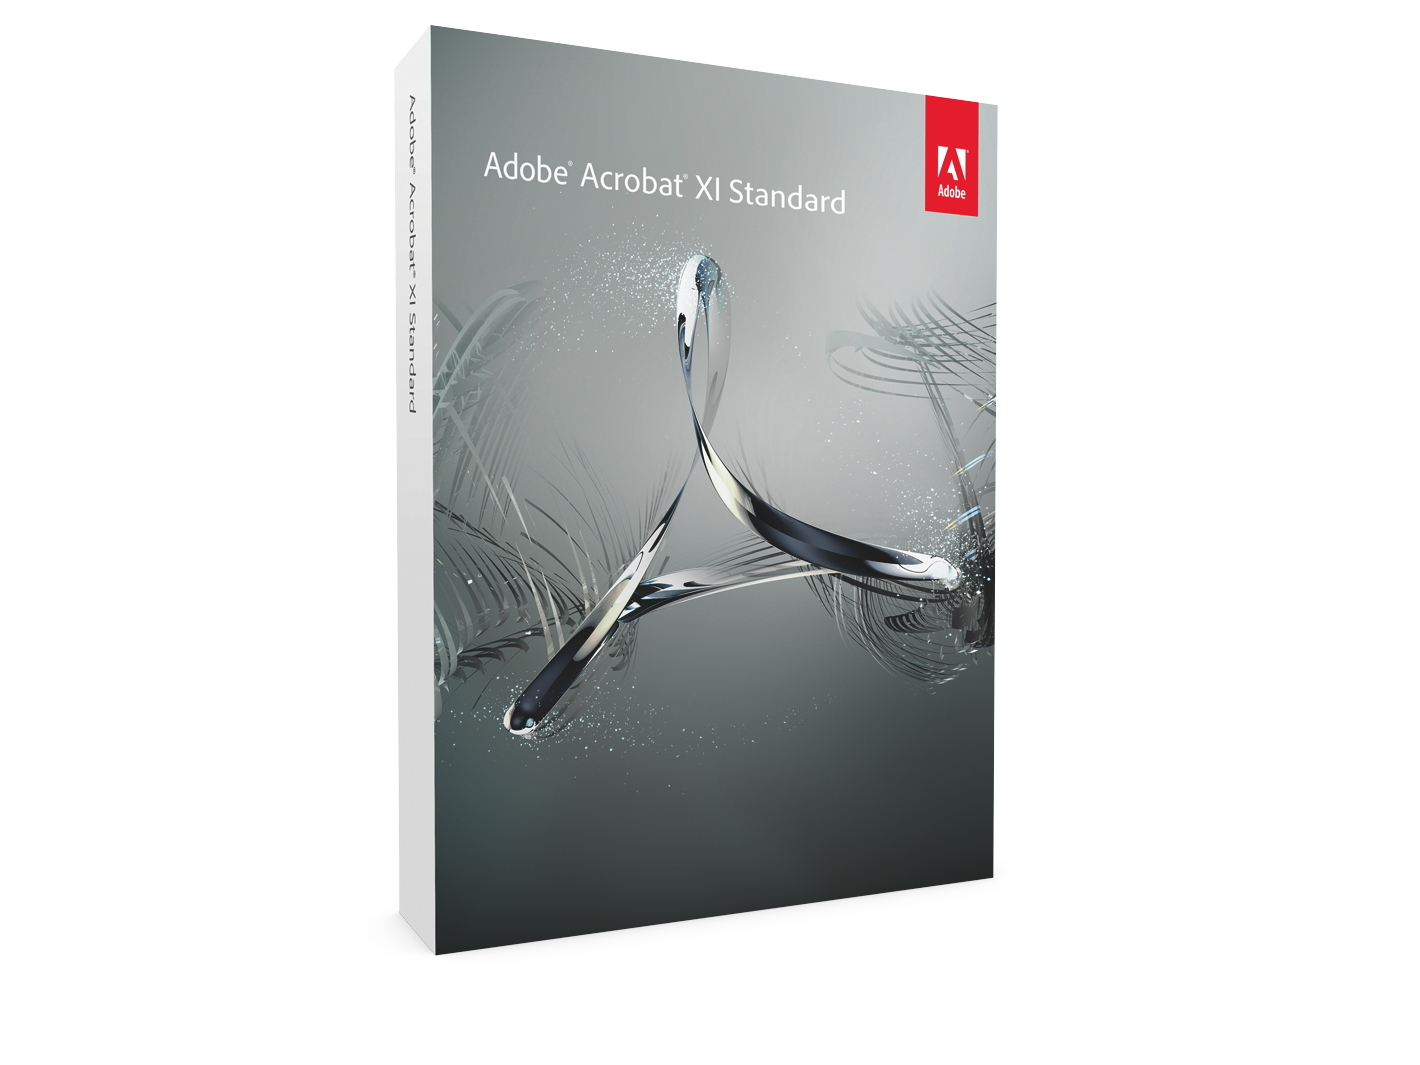 Adobe Acrobat XI Standard 11.0 Windows Full Version Download - Image, Video & Audio